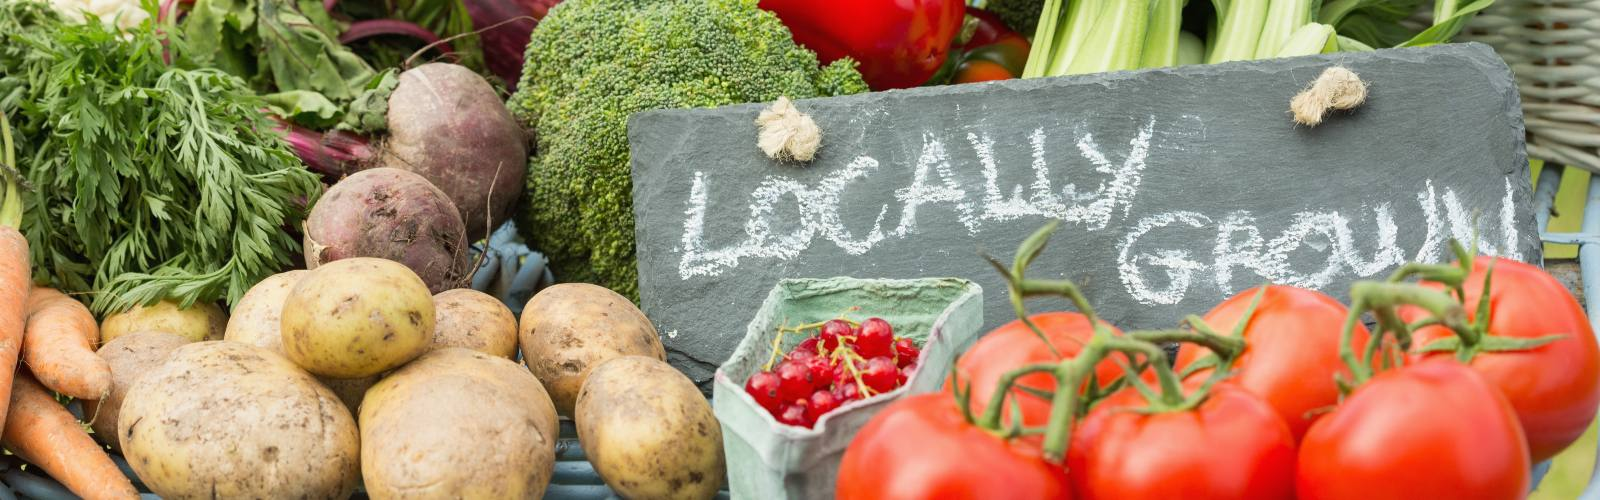 Farmers' markets – savvy shopping for extra savings